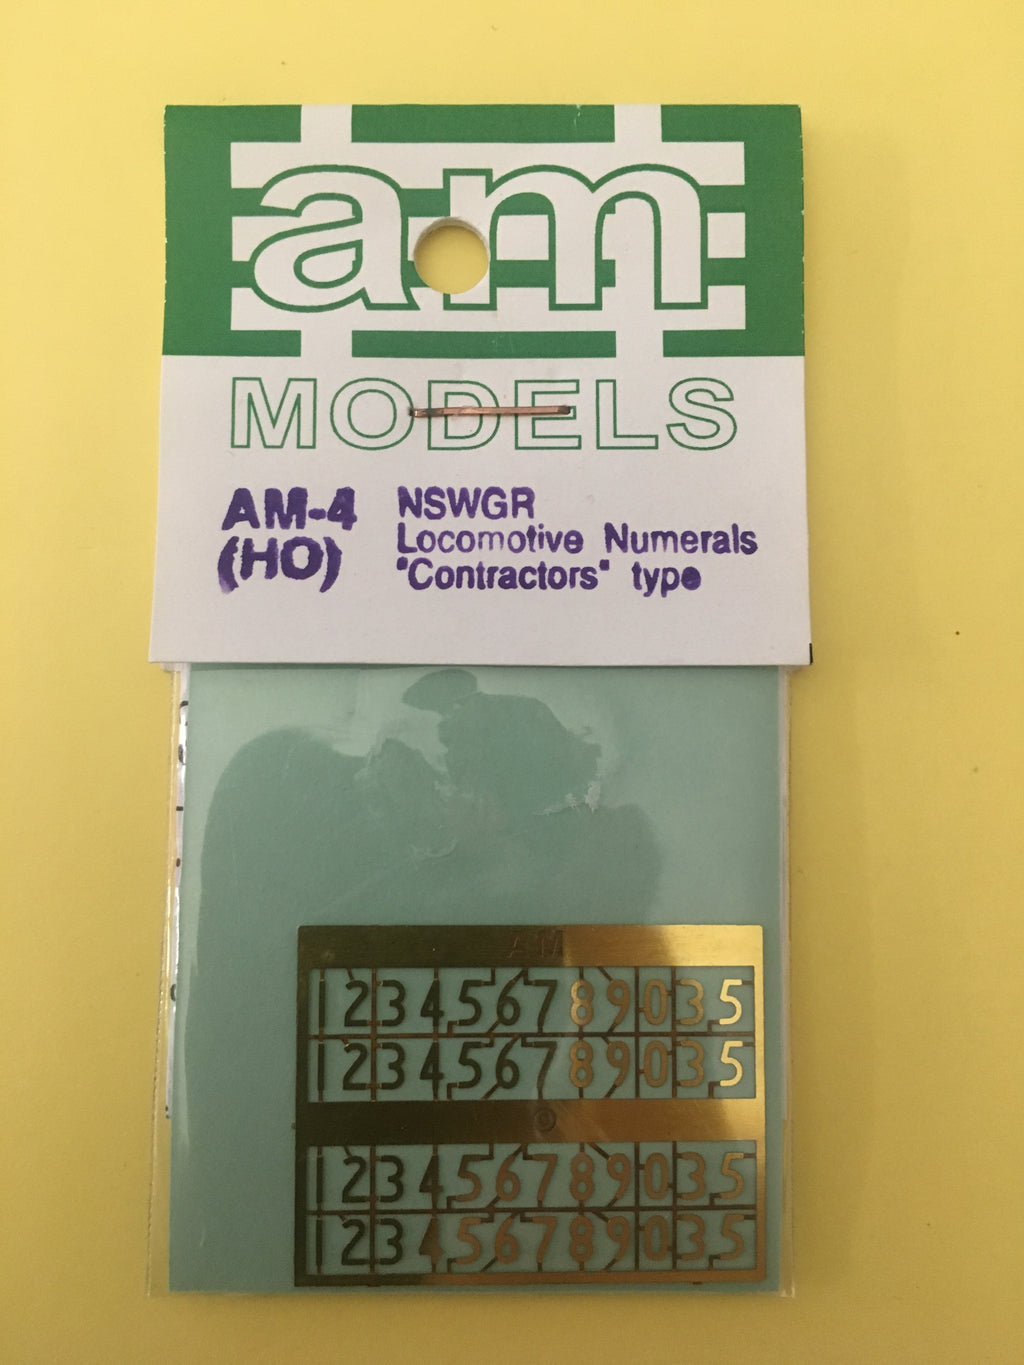 "AM Models : AM-4 NSWGR Standard Loco Numeral-""Contractors"" type - Etch Brass"